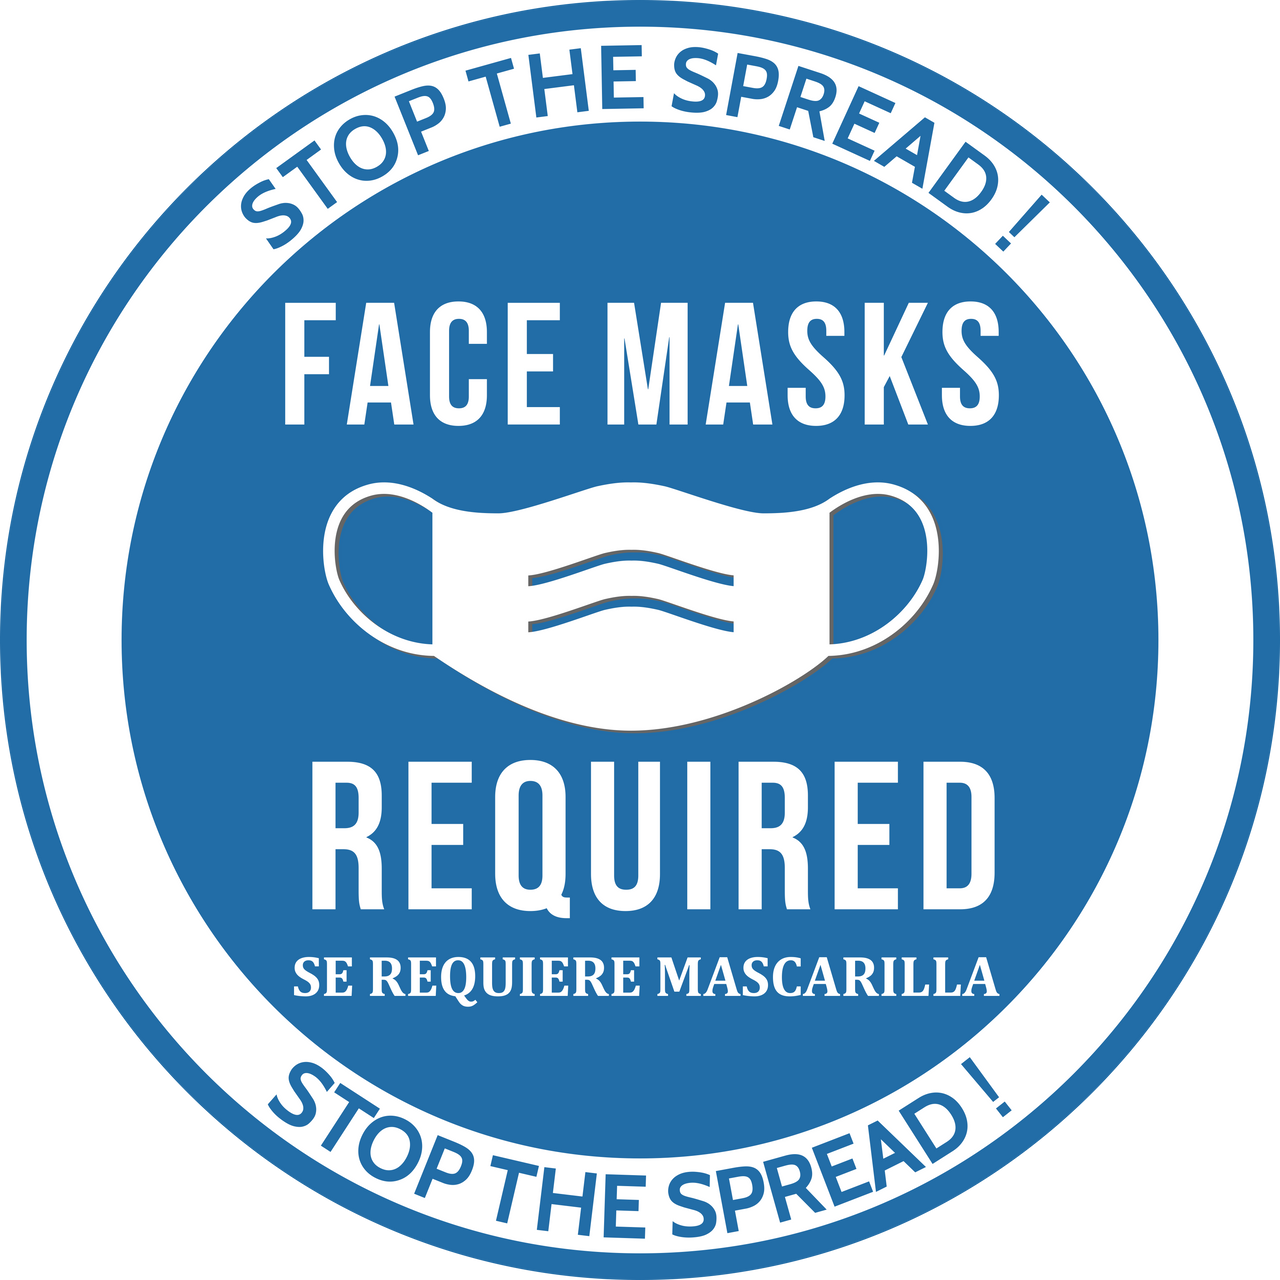 Face Mask Required Floor Decal | Covid-19 Floor Sticker | Coronavirus Floor Decal | Social Distancing Floor Sign | Pandemic Floor Sticker Decal